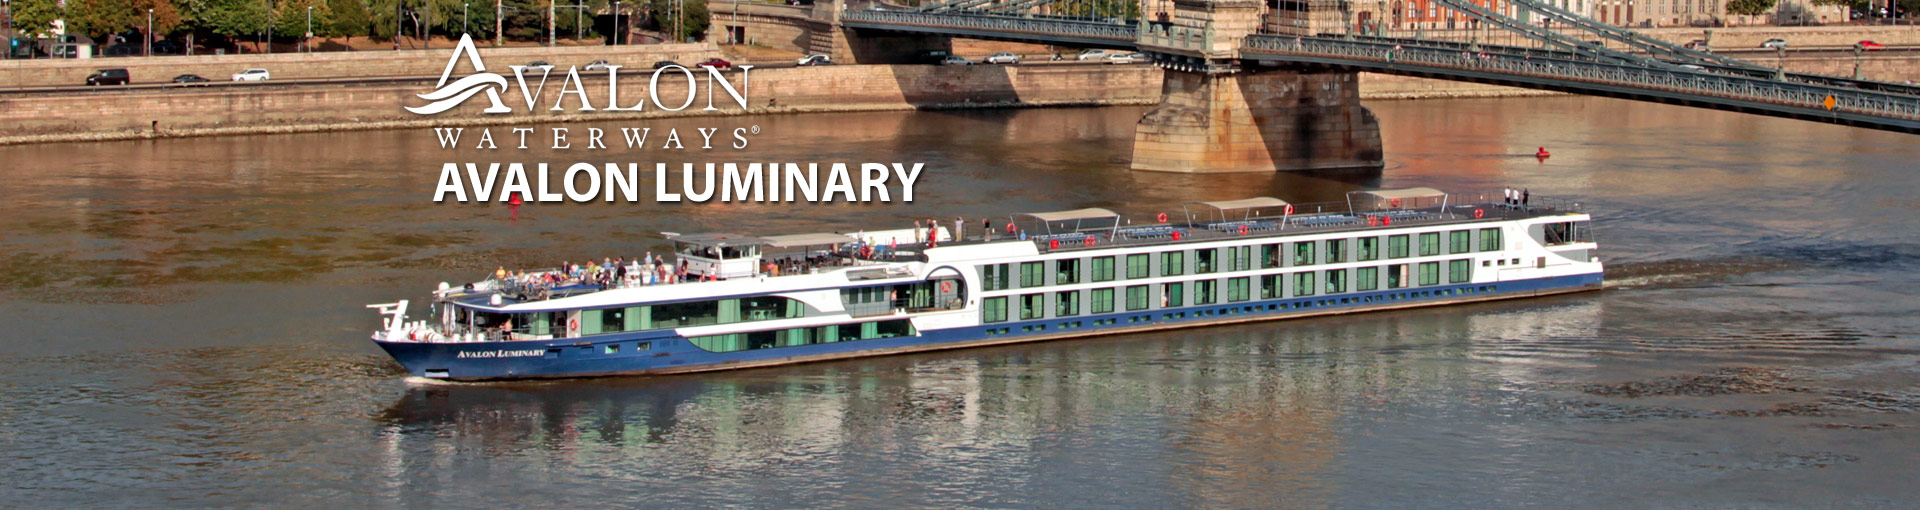 Avalon Waterways Luminary river cruise ship